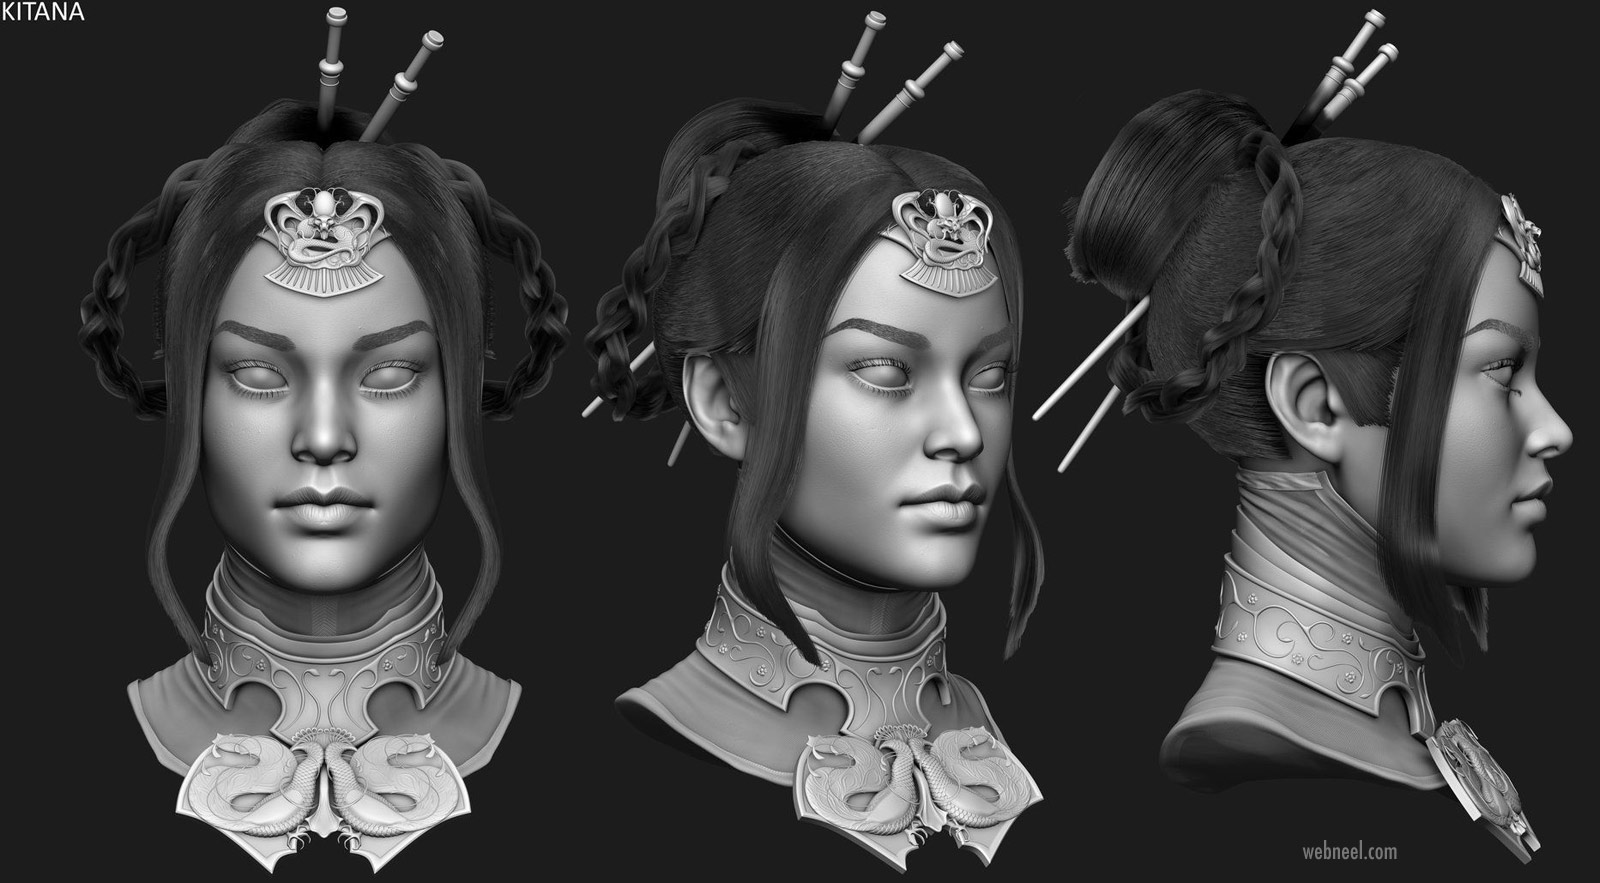 3d modelling woman head princess kitana